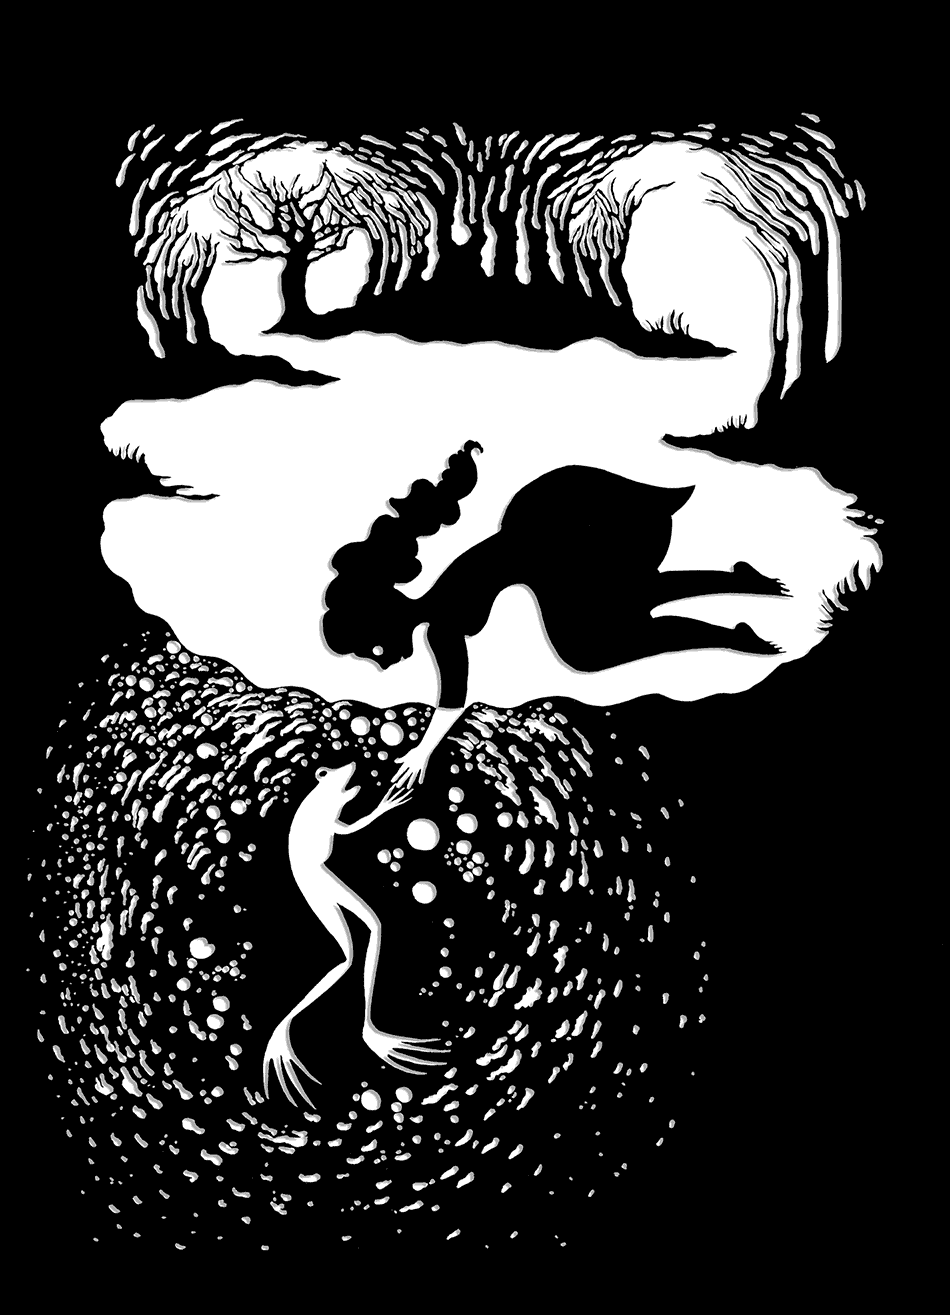 'The Frog King'; illustration by Andrea Dezsö from The Complete First Edition: The Original Folk and Fairy Tales of the Brothers Grimm